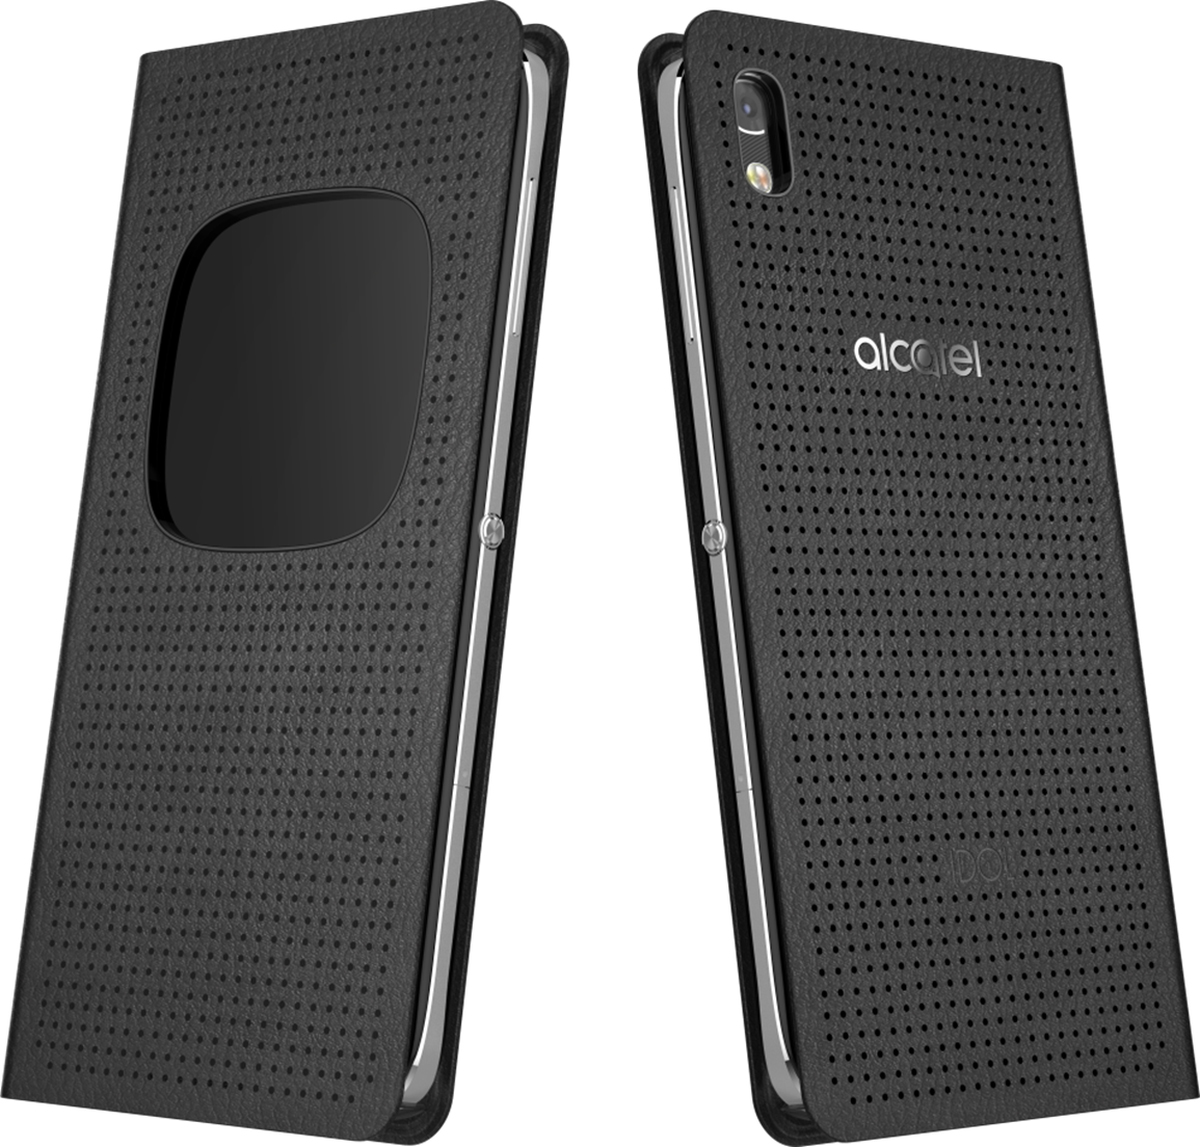 Alcatel MF6055 чехол для Idol 4 (6055K), Black alcatel one touch idol 4 6055k купить